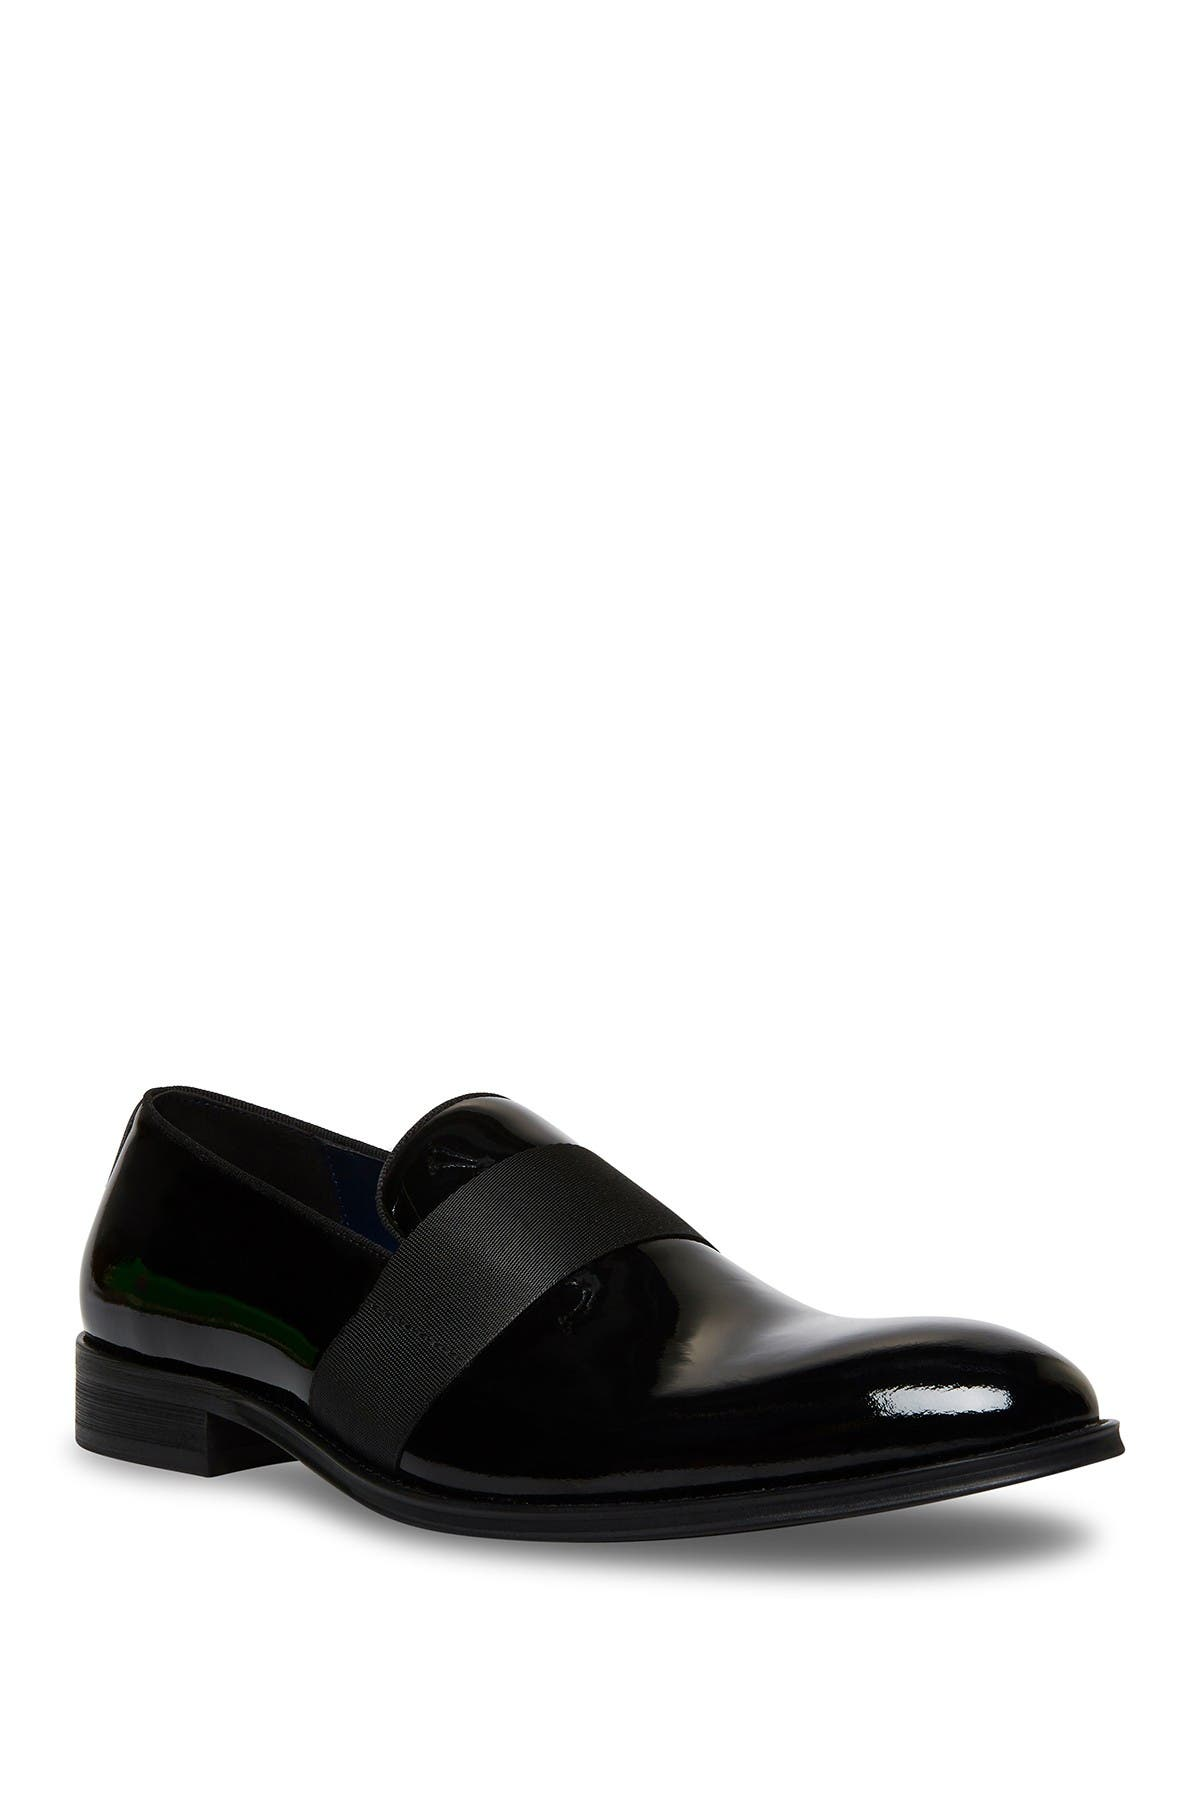 Image of Steve Madden Renzzo Leather Loafer